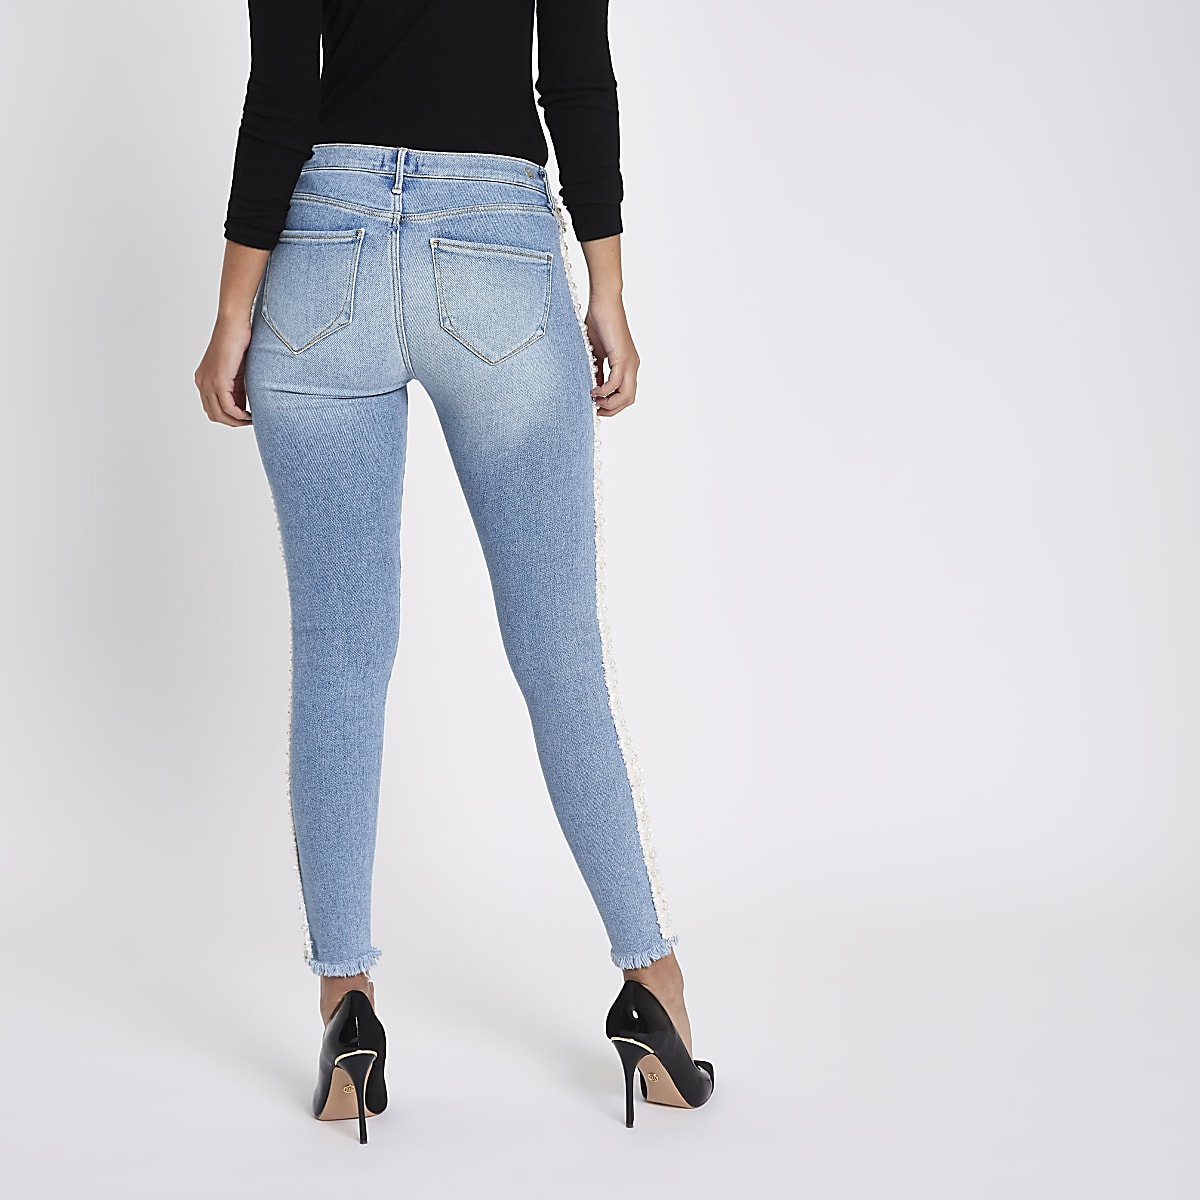 f07032075a42a Blue Molly pearl embellished jeggings - Jeggings - Jeans - women